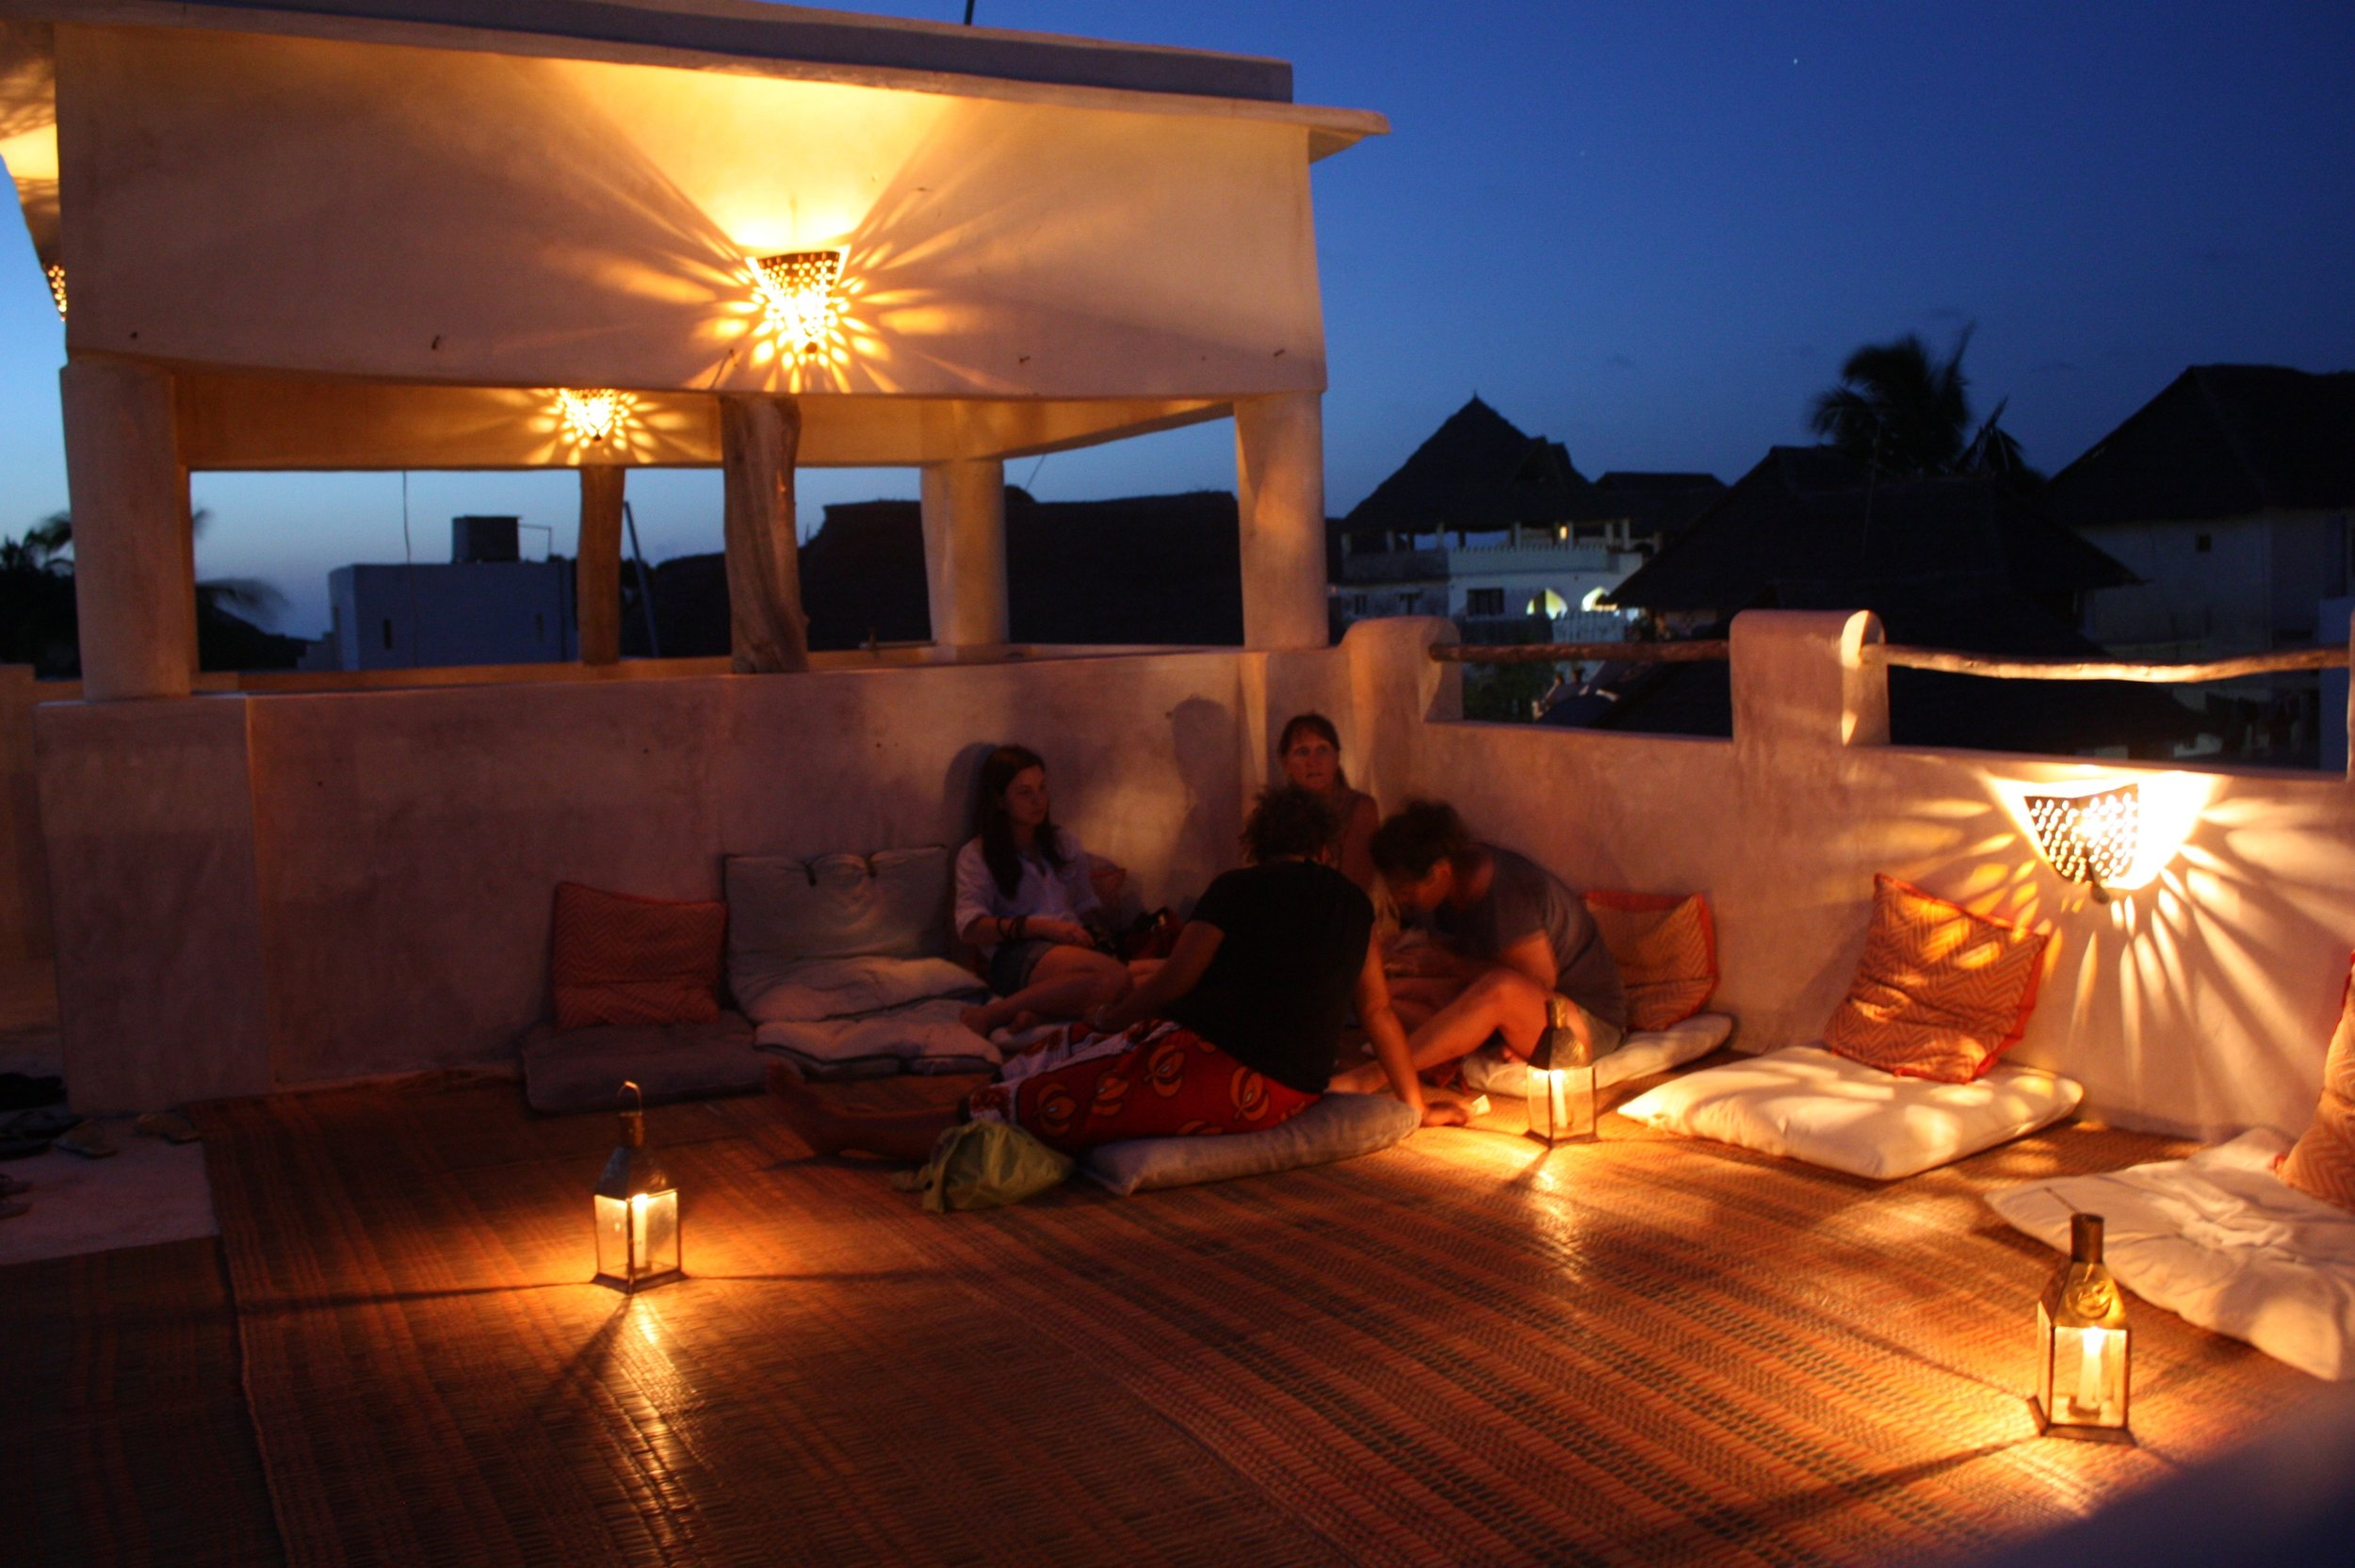 Design Inspiration for Chic Chateau's indoor-outdoor living from the Island of Lamu, Kenya